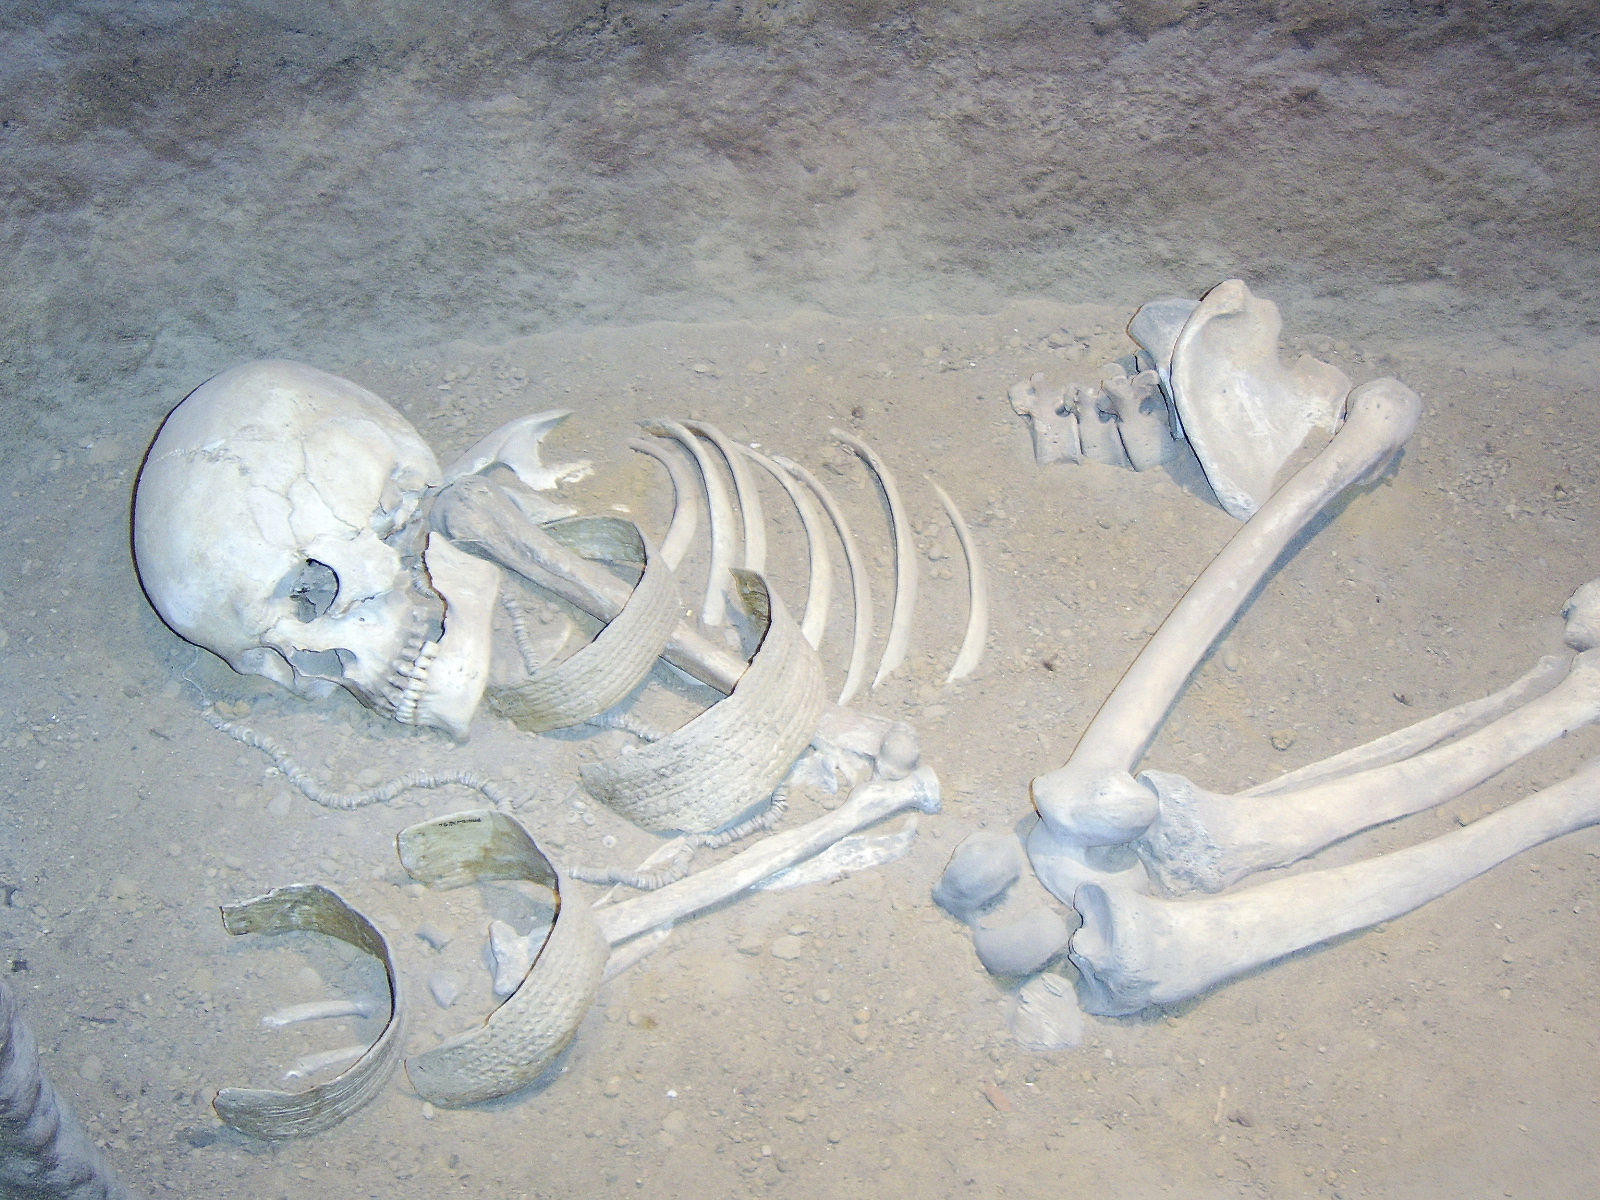 http://upload.wikimedia.org/wikipedia/commons/7/7b/Biskupin_012_women_skeleton.jpg